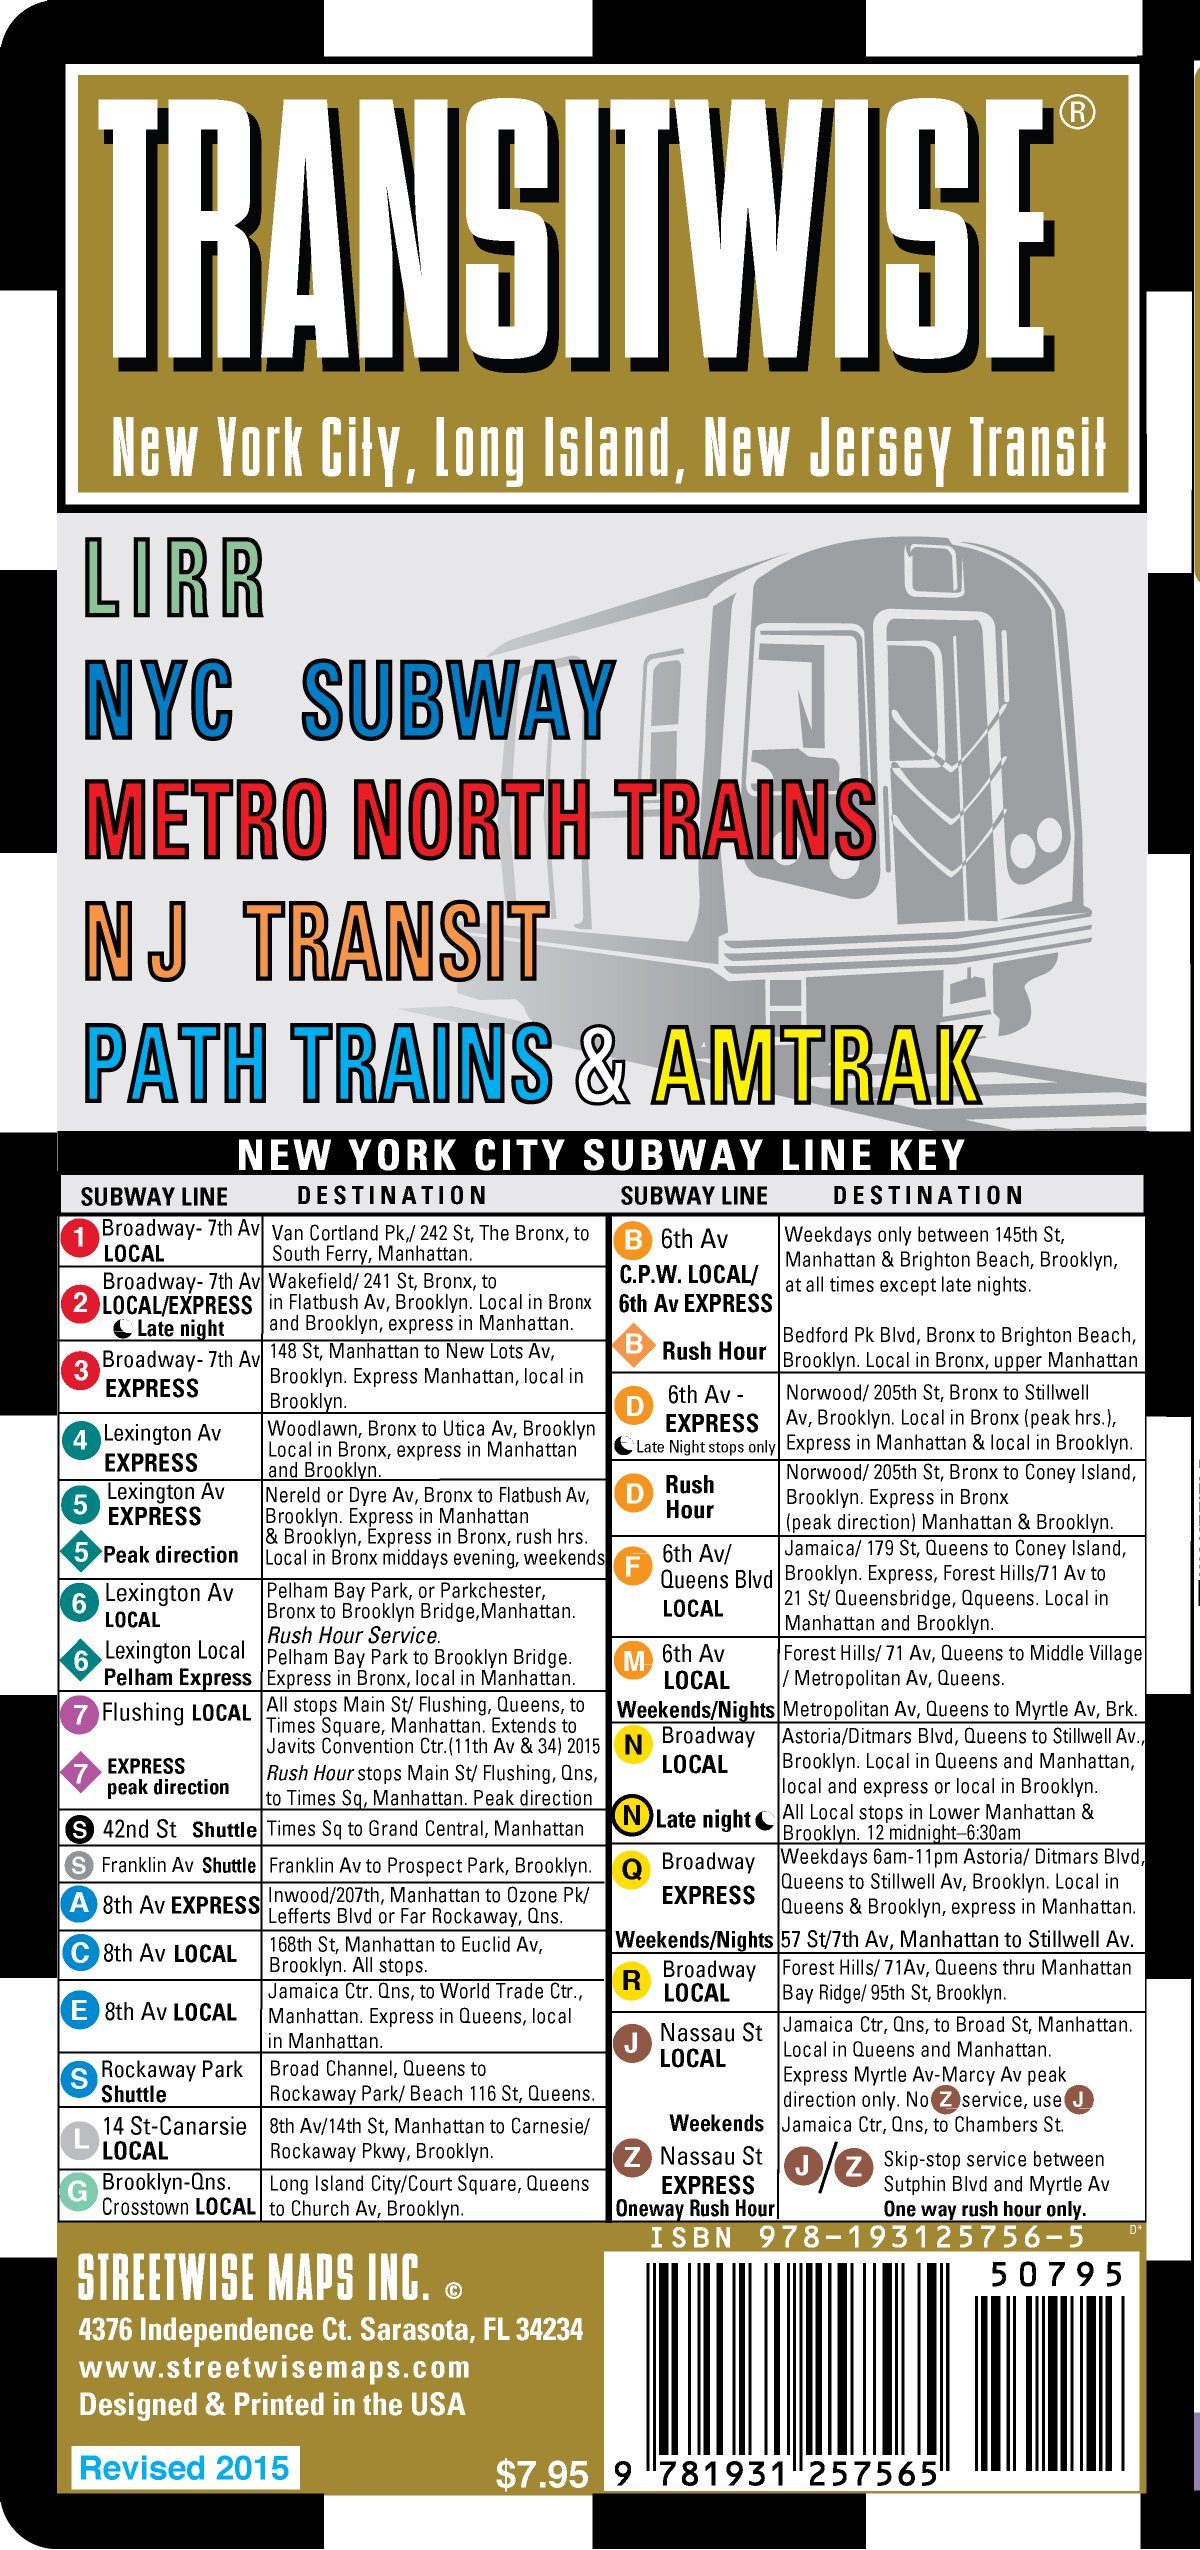 Ny Subway Map 7 Train.Streetwise Transitwise New York City Subway Map Manhattan Subway